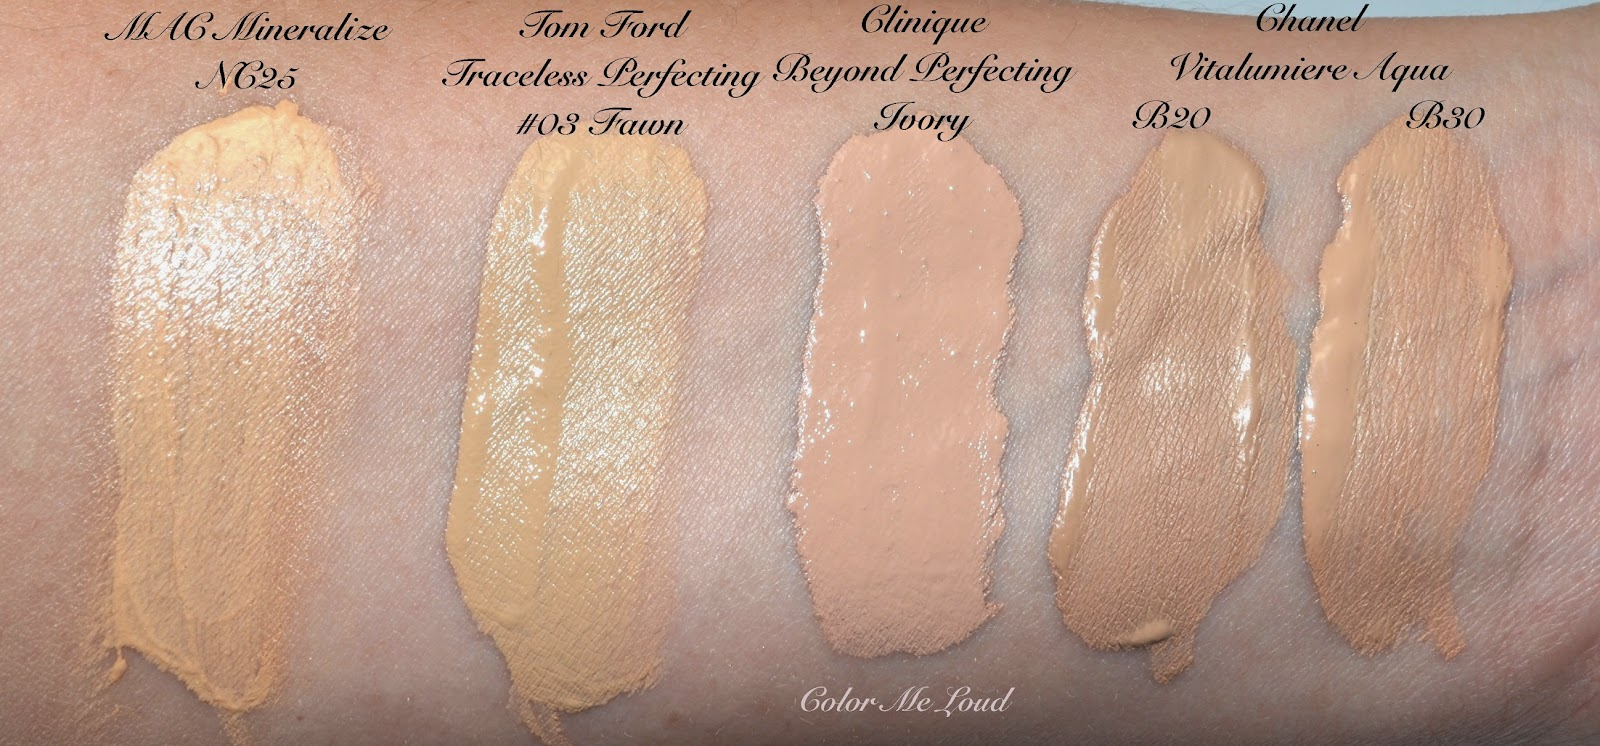 clinique beyond perfecting shade chart: Clinique beyond perfecting foundation and concealer in ivory